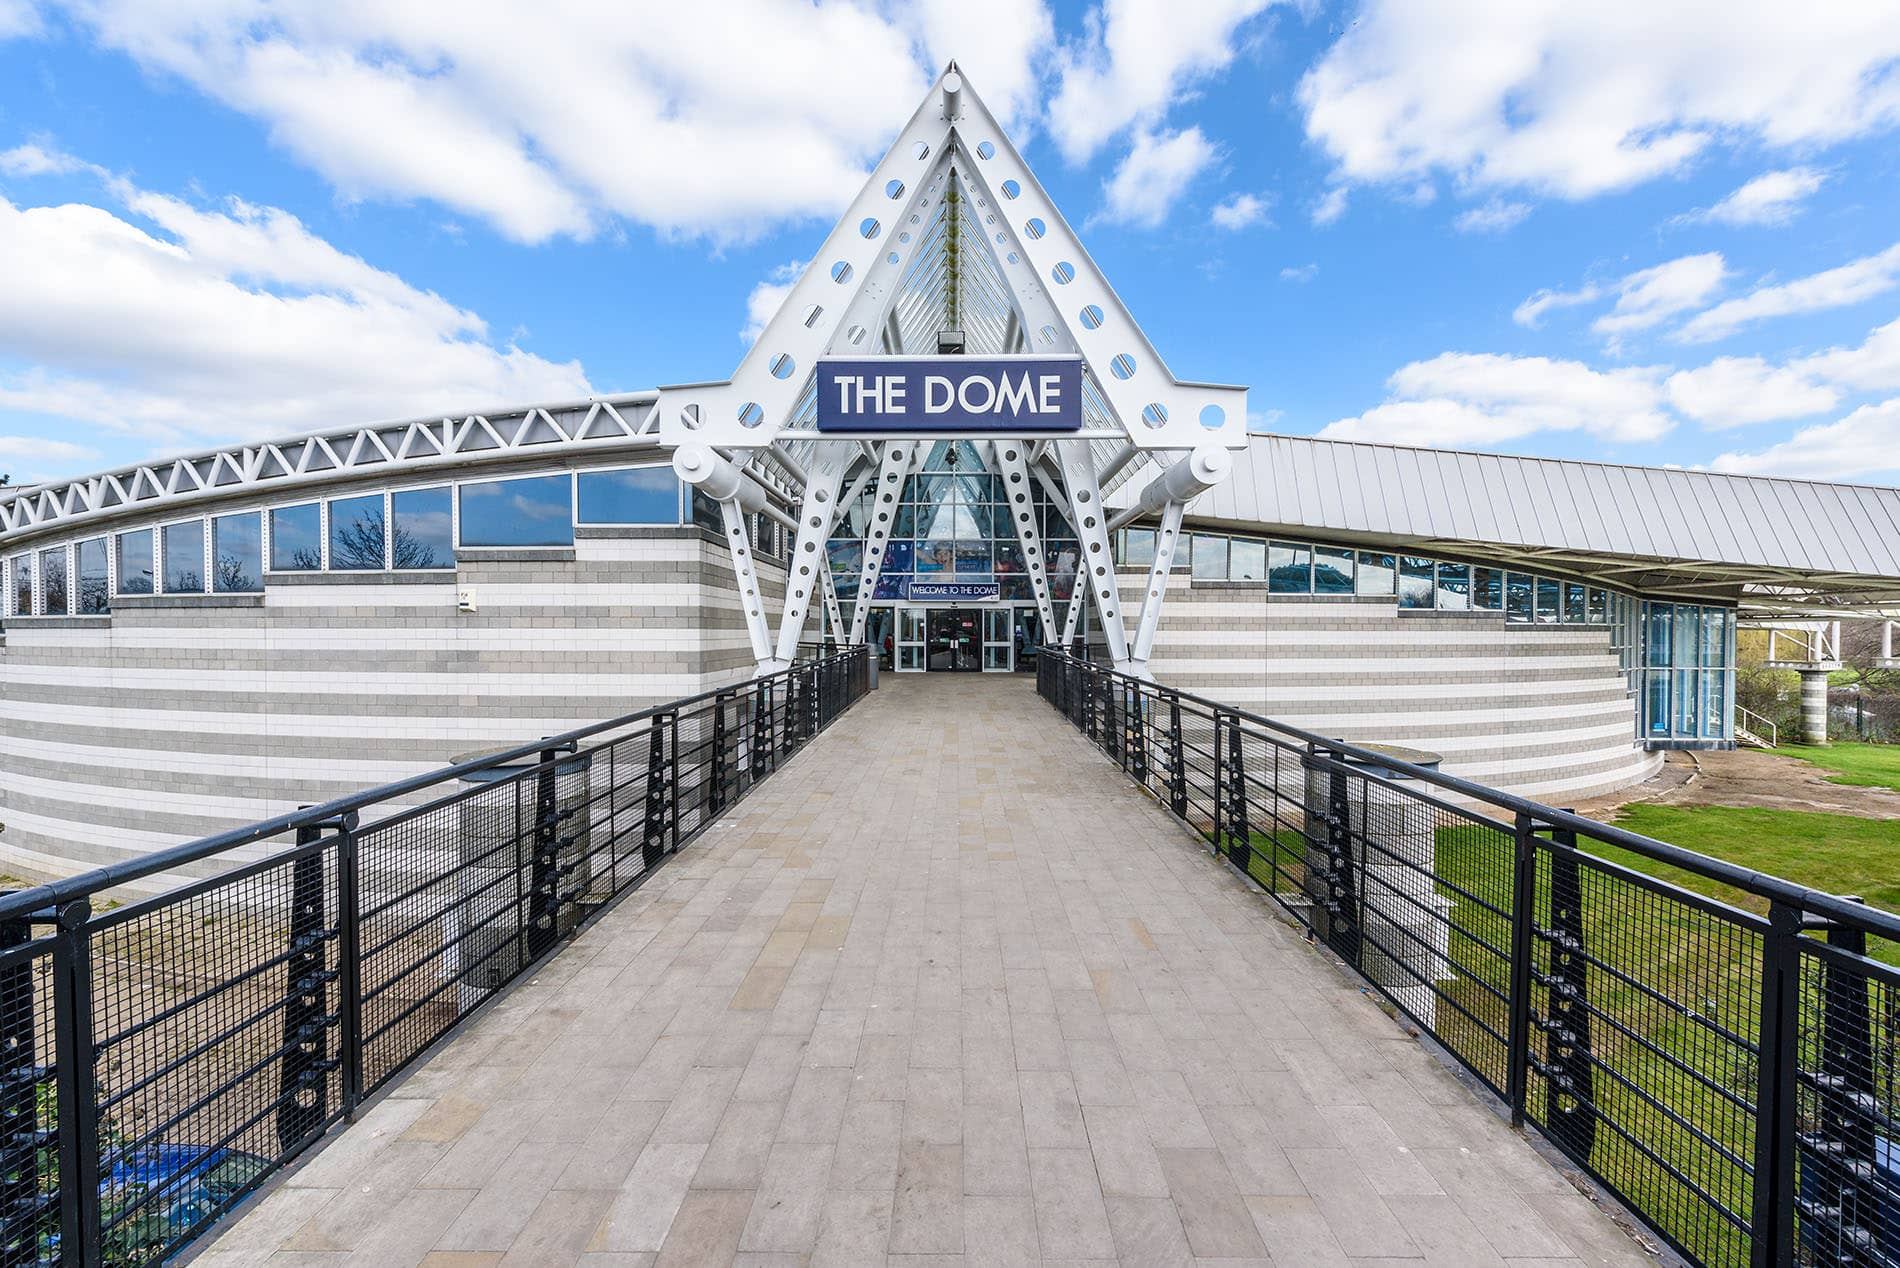 exterior photo of the dome leisure centre in doncaster